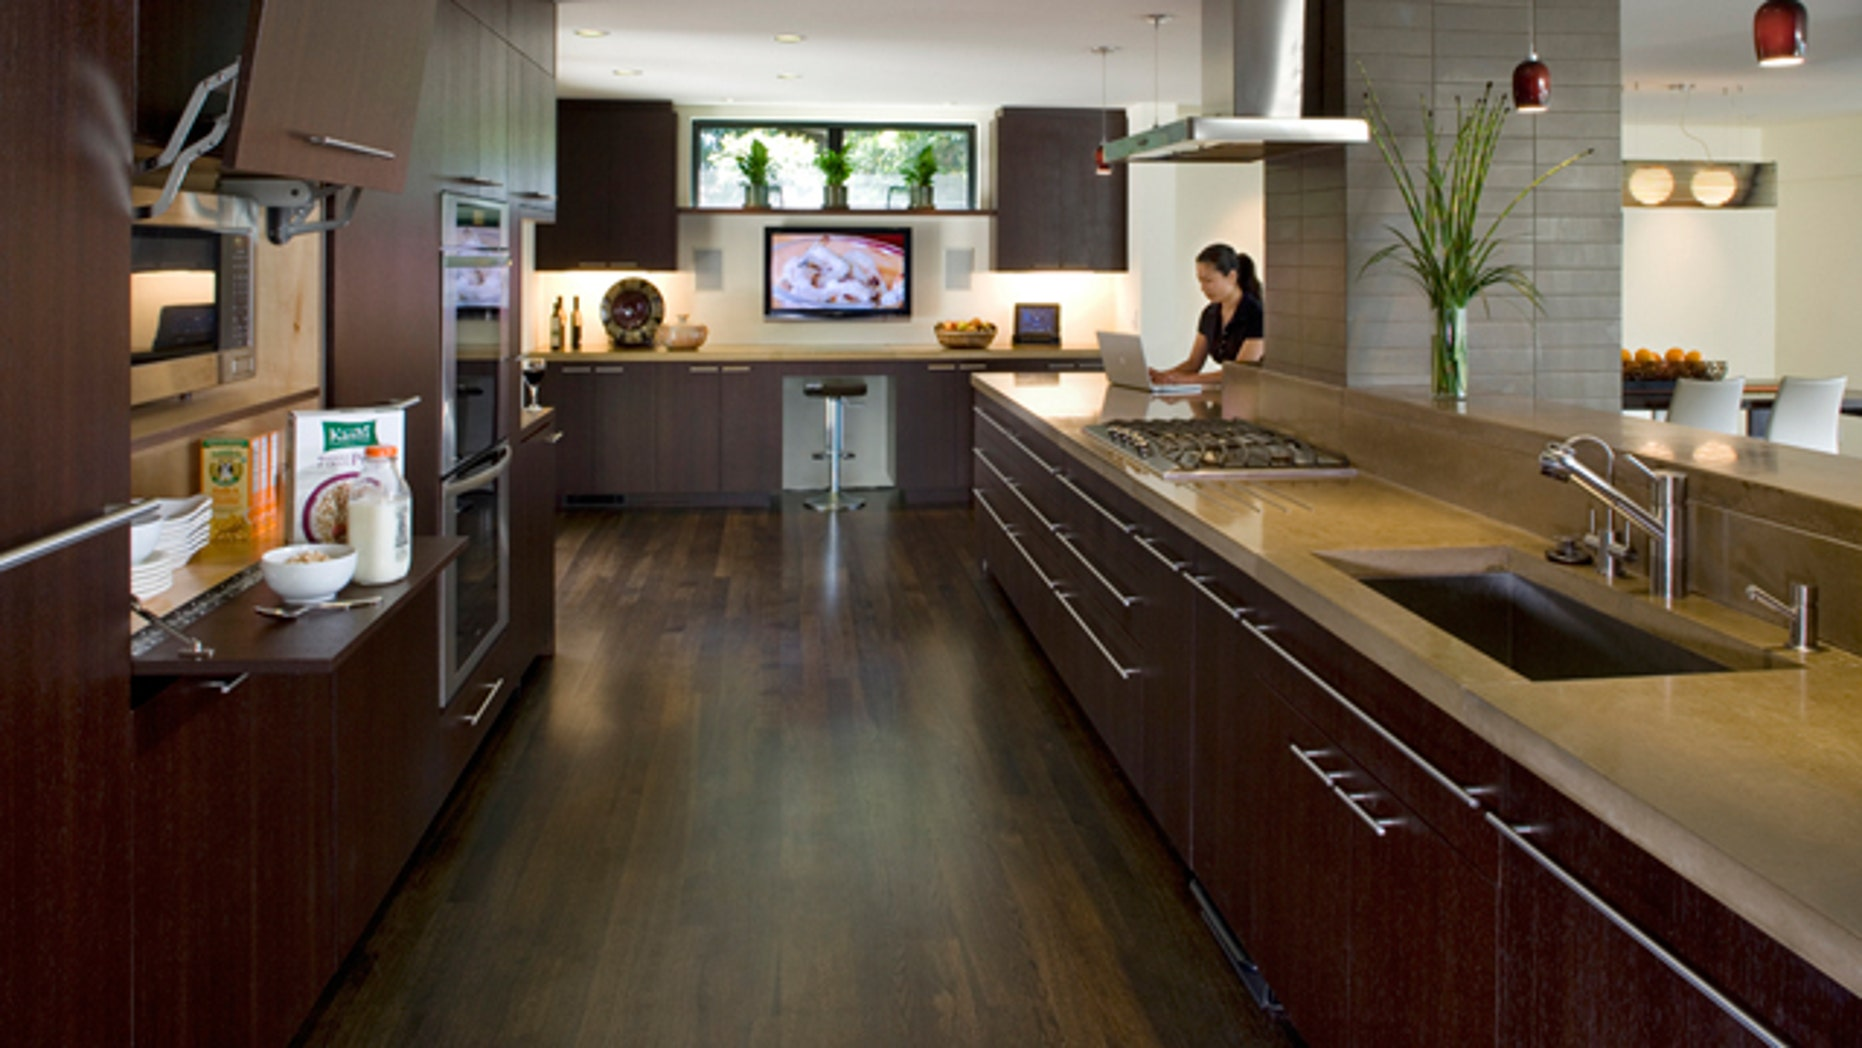 9 ideas coming to a kitchen near you - Kitchen Near You